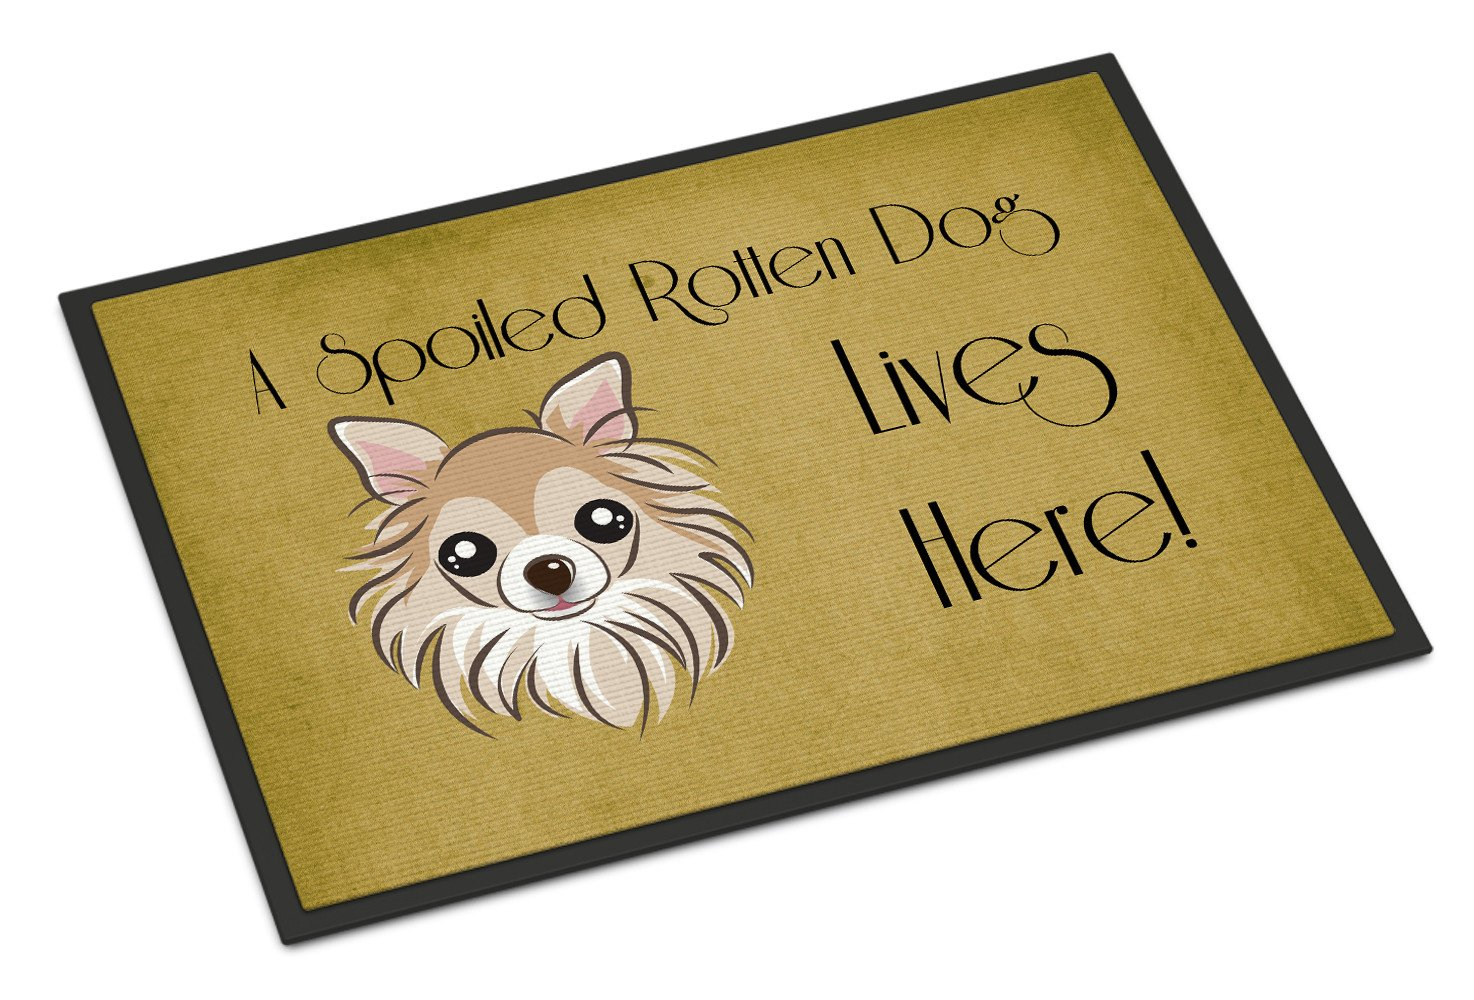 Chihuahua Spoiled Dog Lives Here Indoor or Outdoor Mat 18x27 BB1499MAT - the-store.com